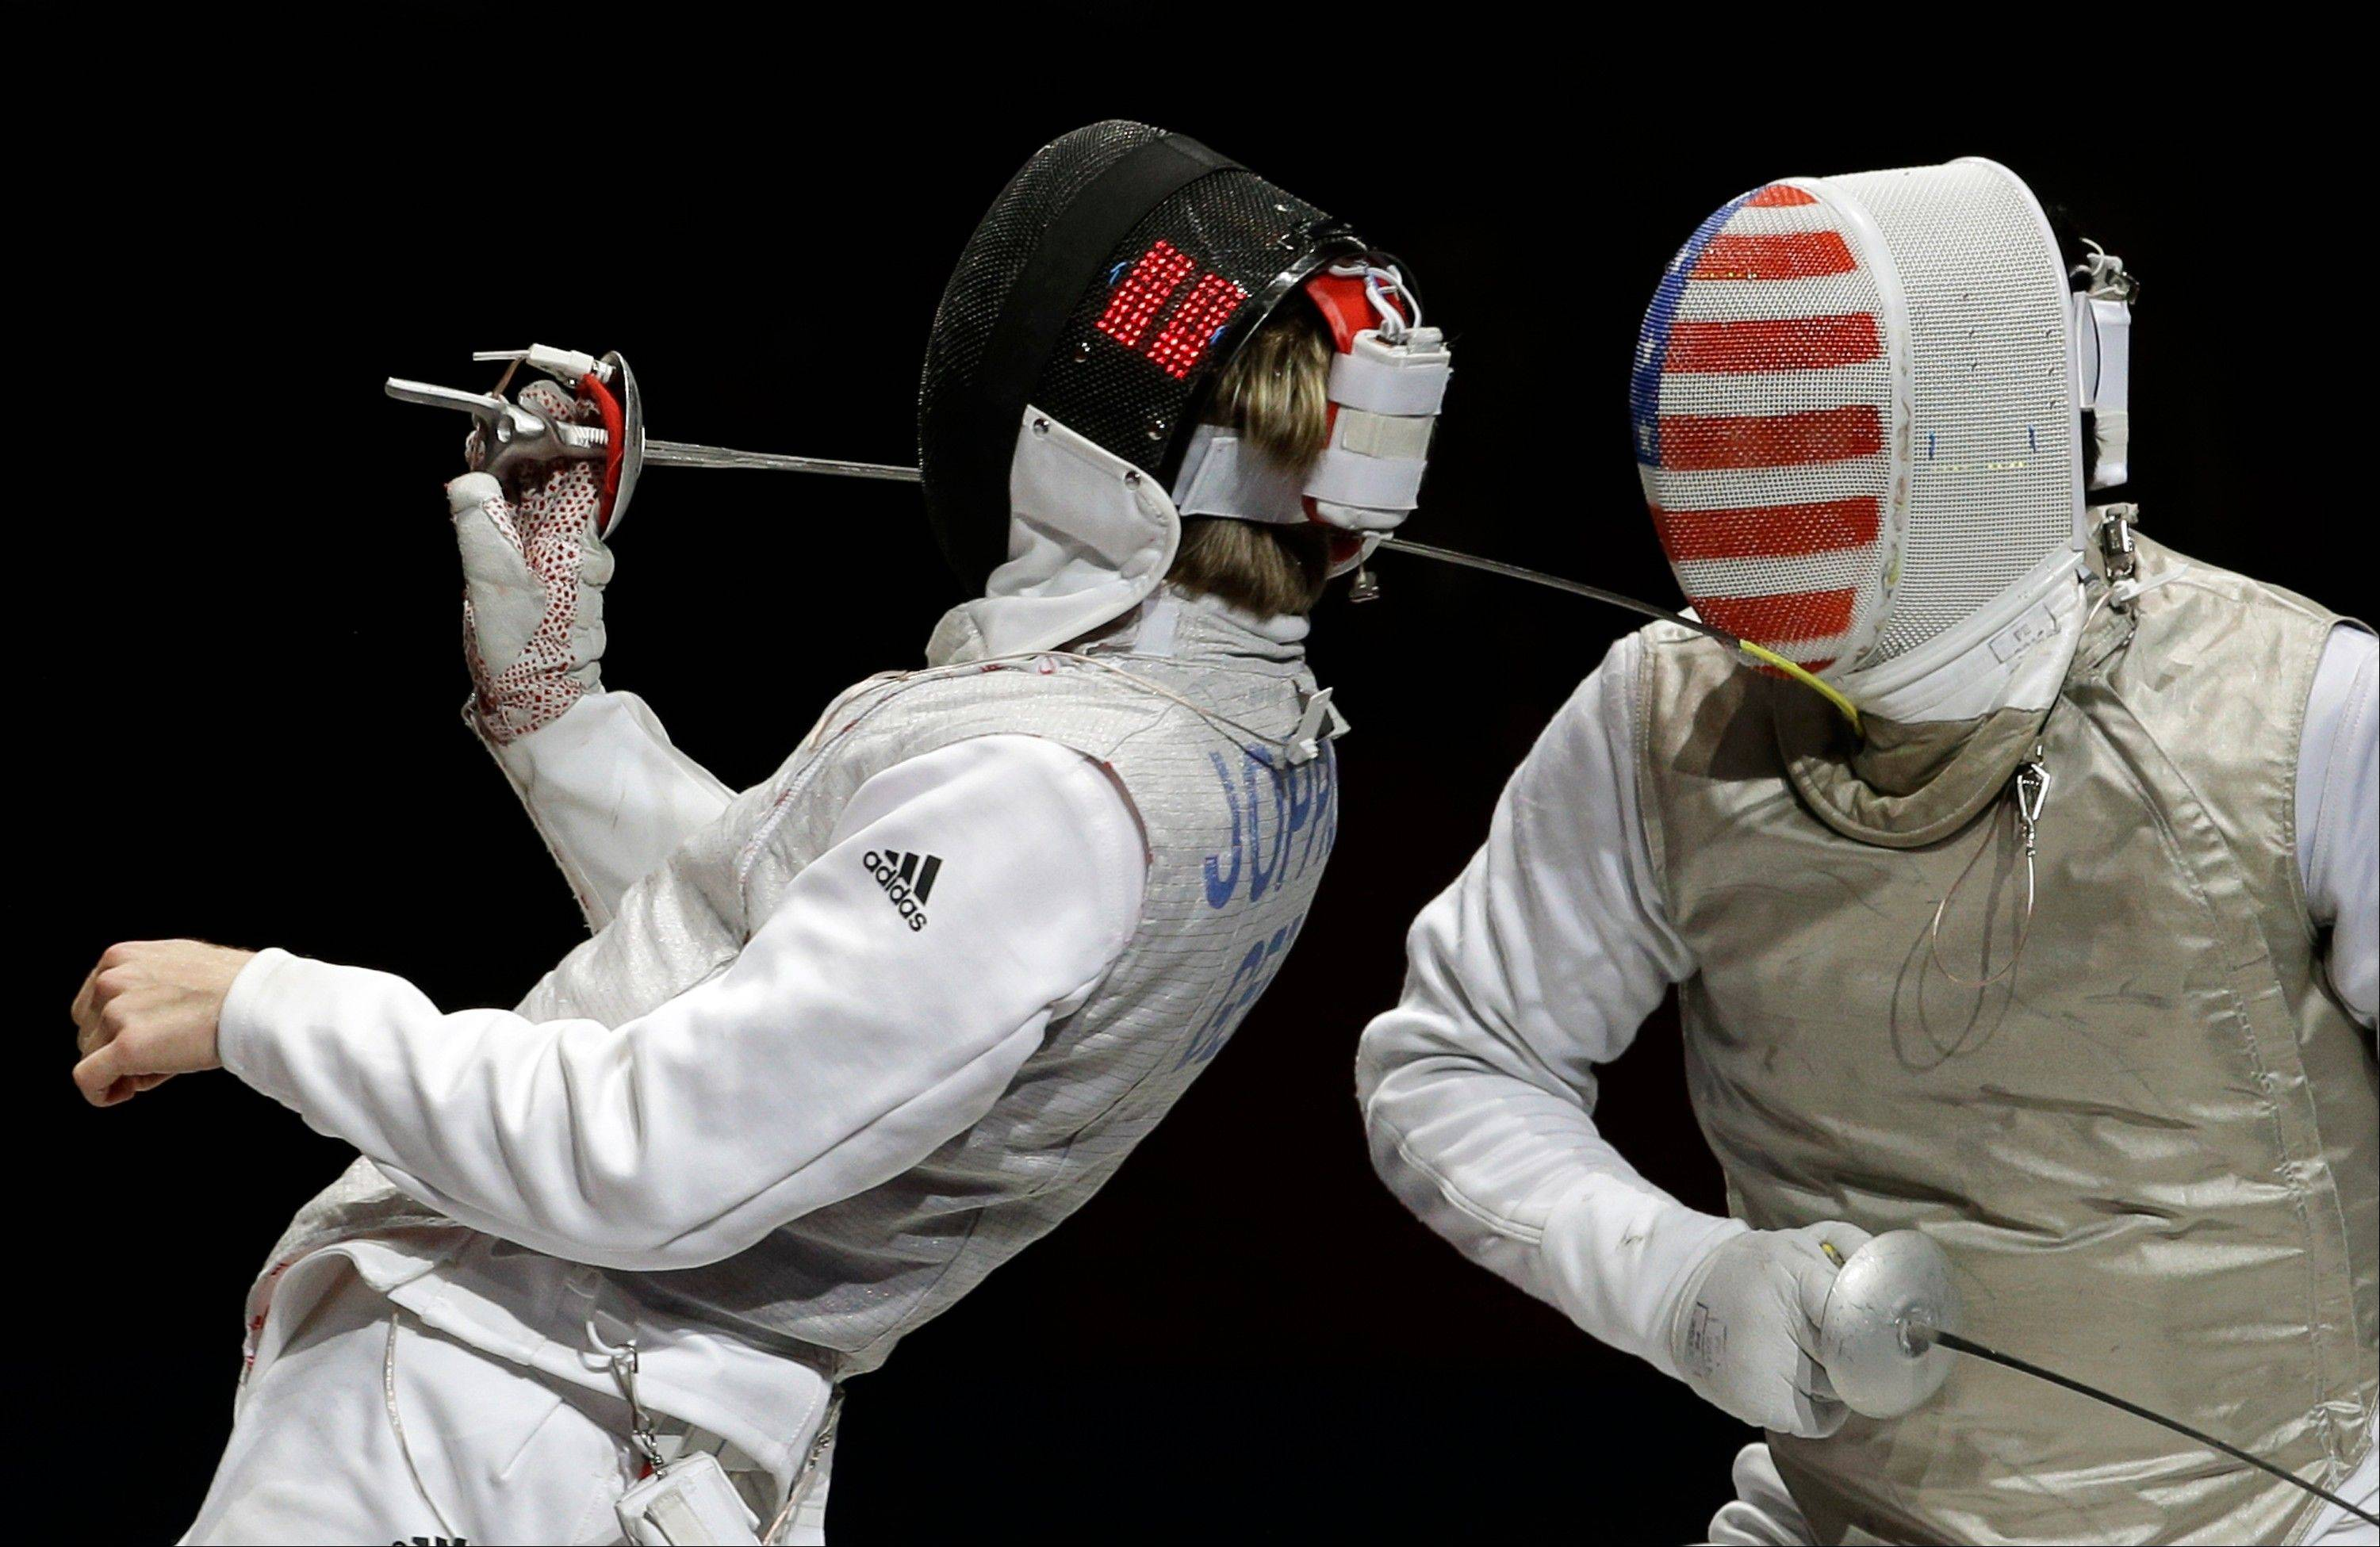 Peter Joppich of Germany competes against Gerek Meinhardt of the United States, right, during the men's foil team fencing competition at the 2012 Summer Olympics, Sunday, Aug. 5, 2012, in London.